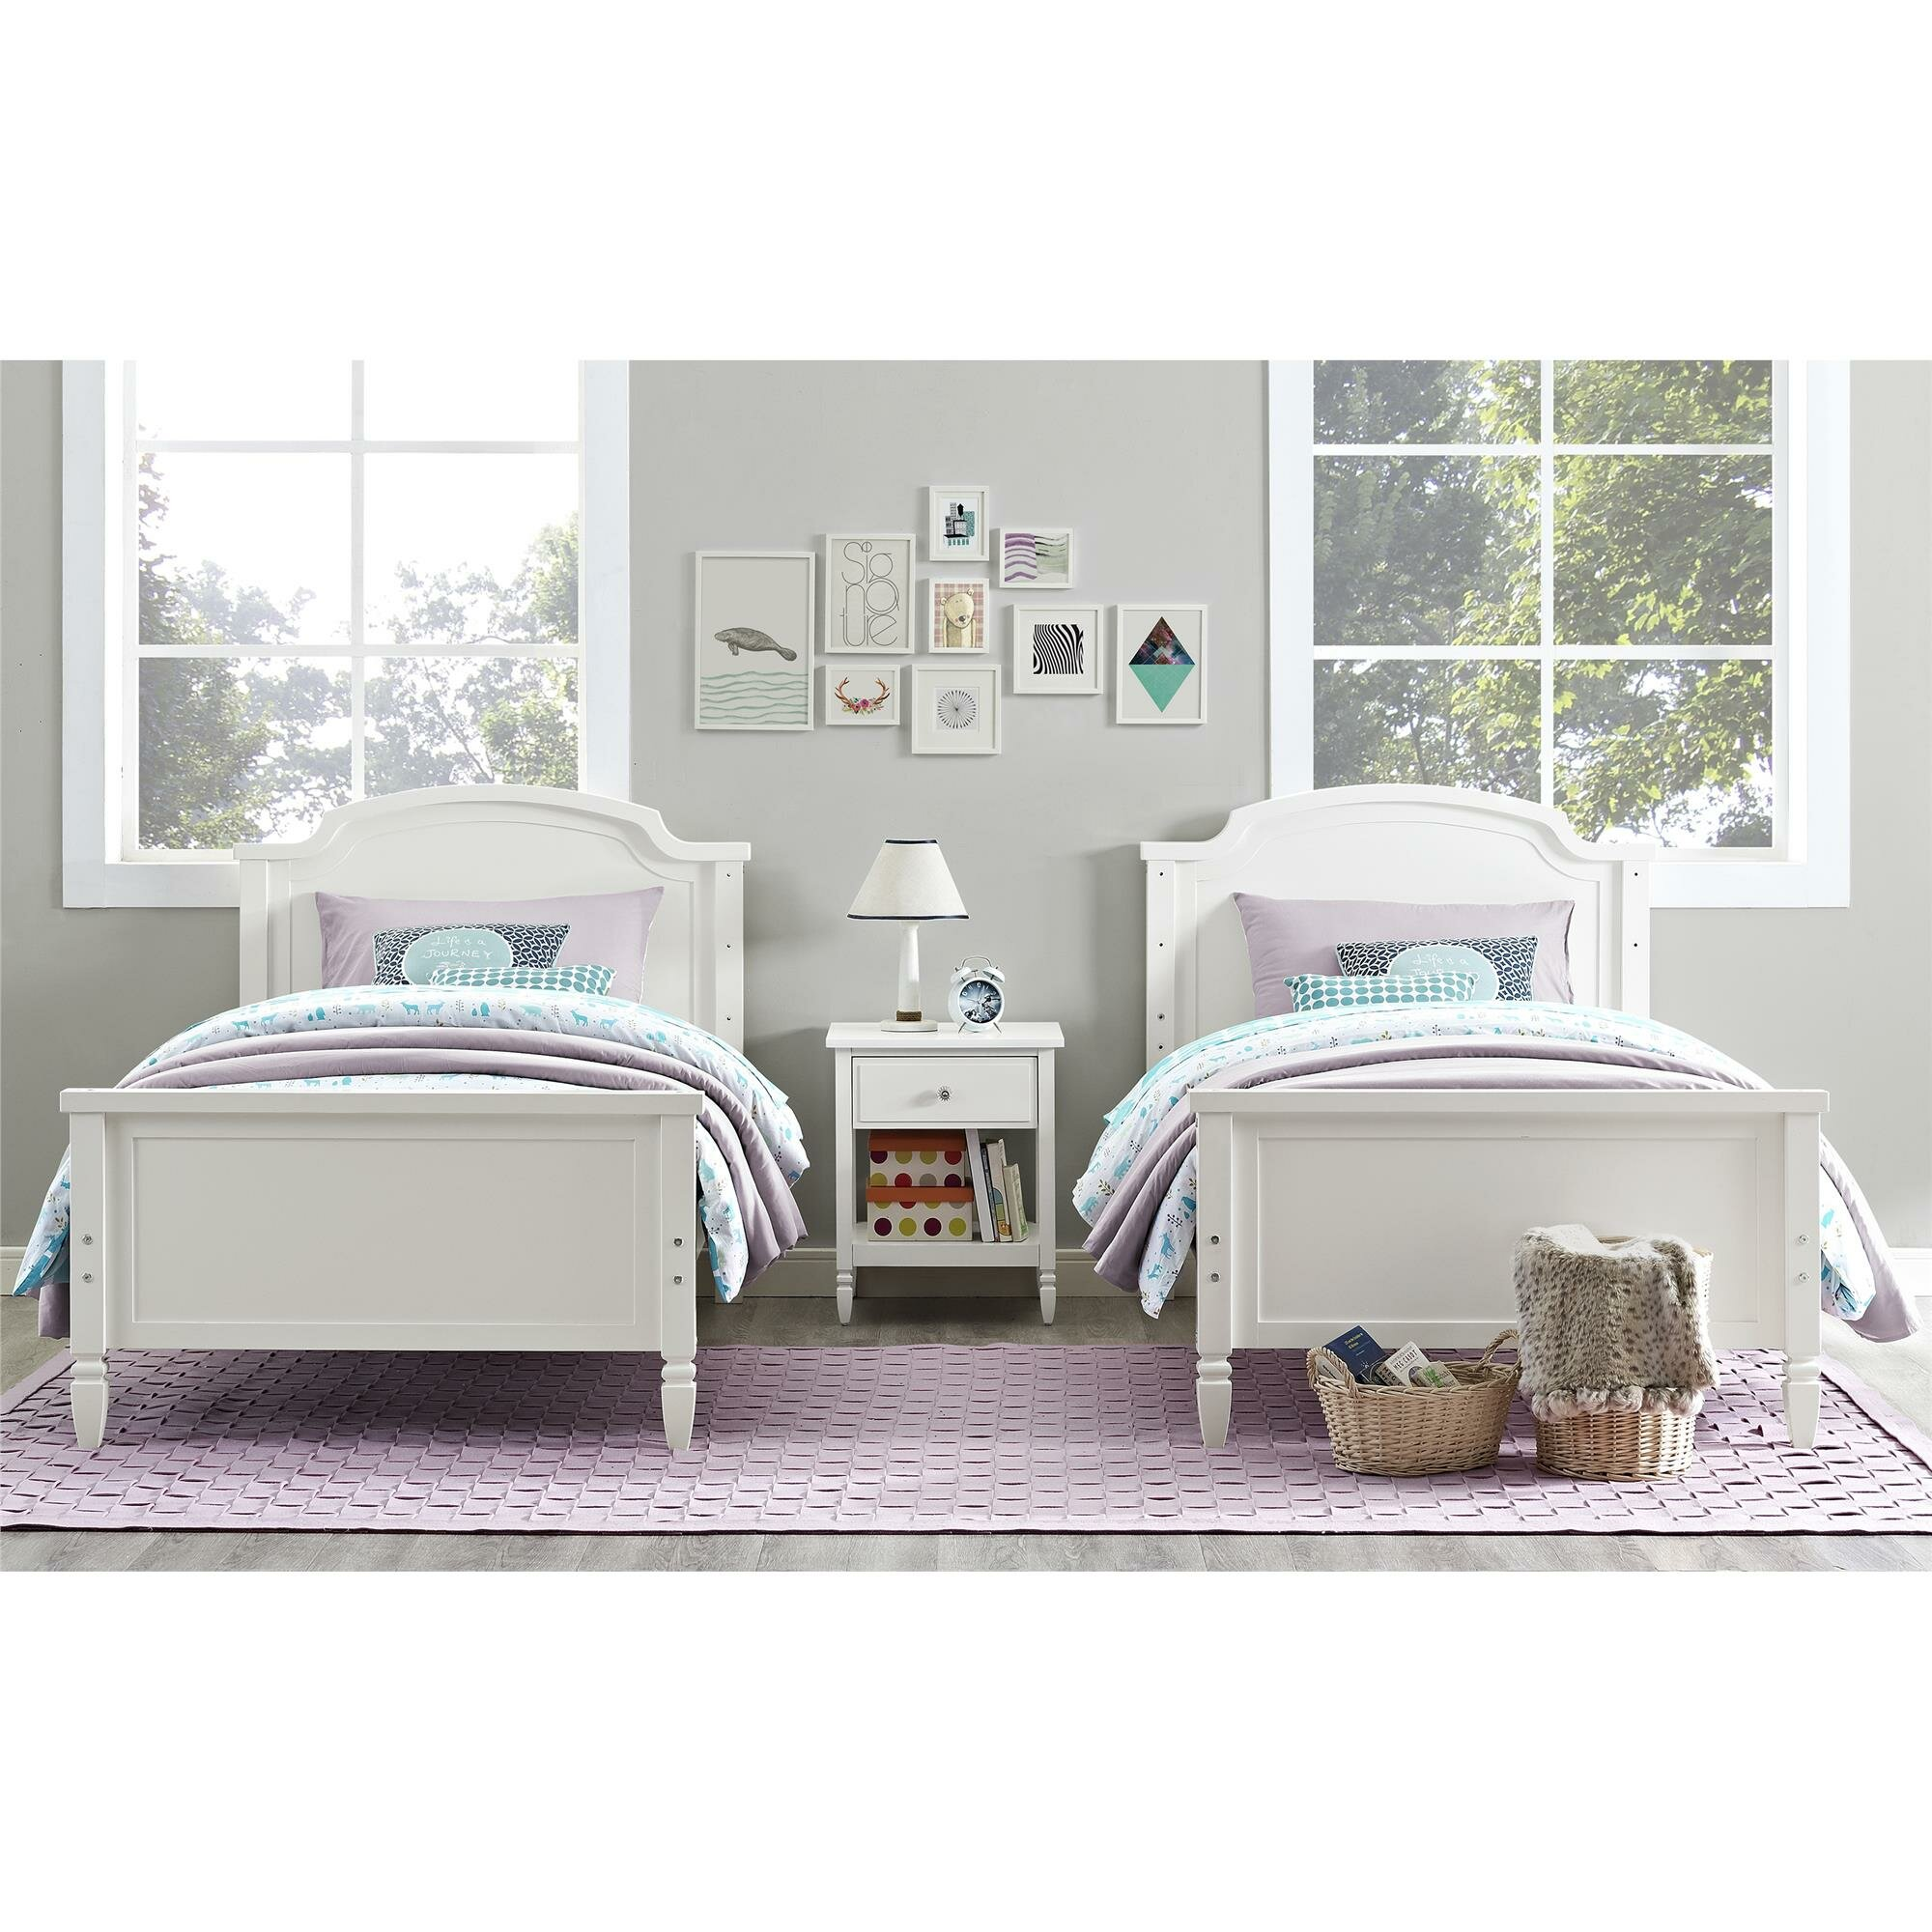 White Twin Bunk Beds Cheaper Than Retail Price Buy Clothing Accessories And Lifestyle Products For Women Men